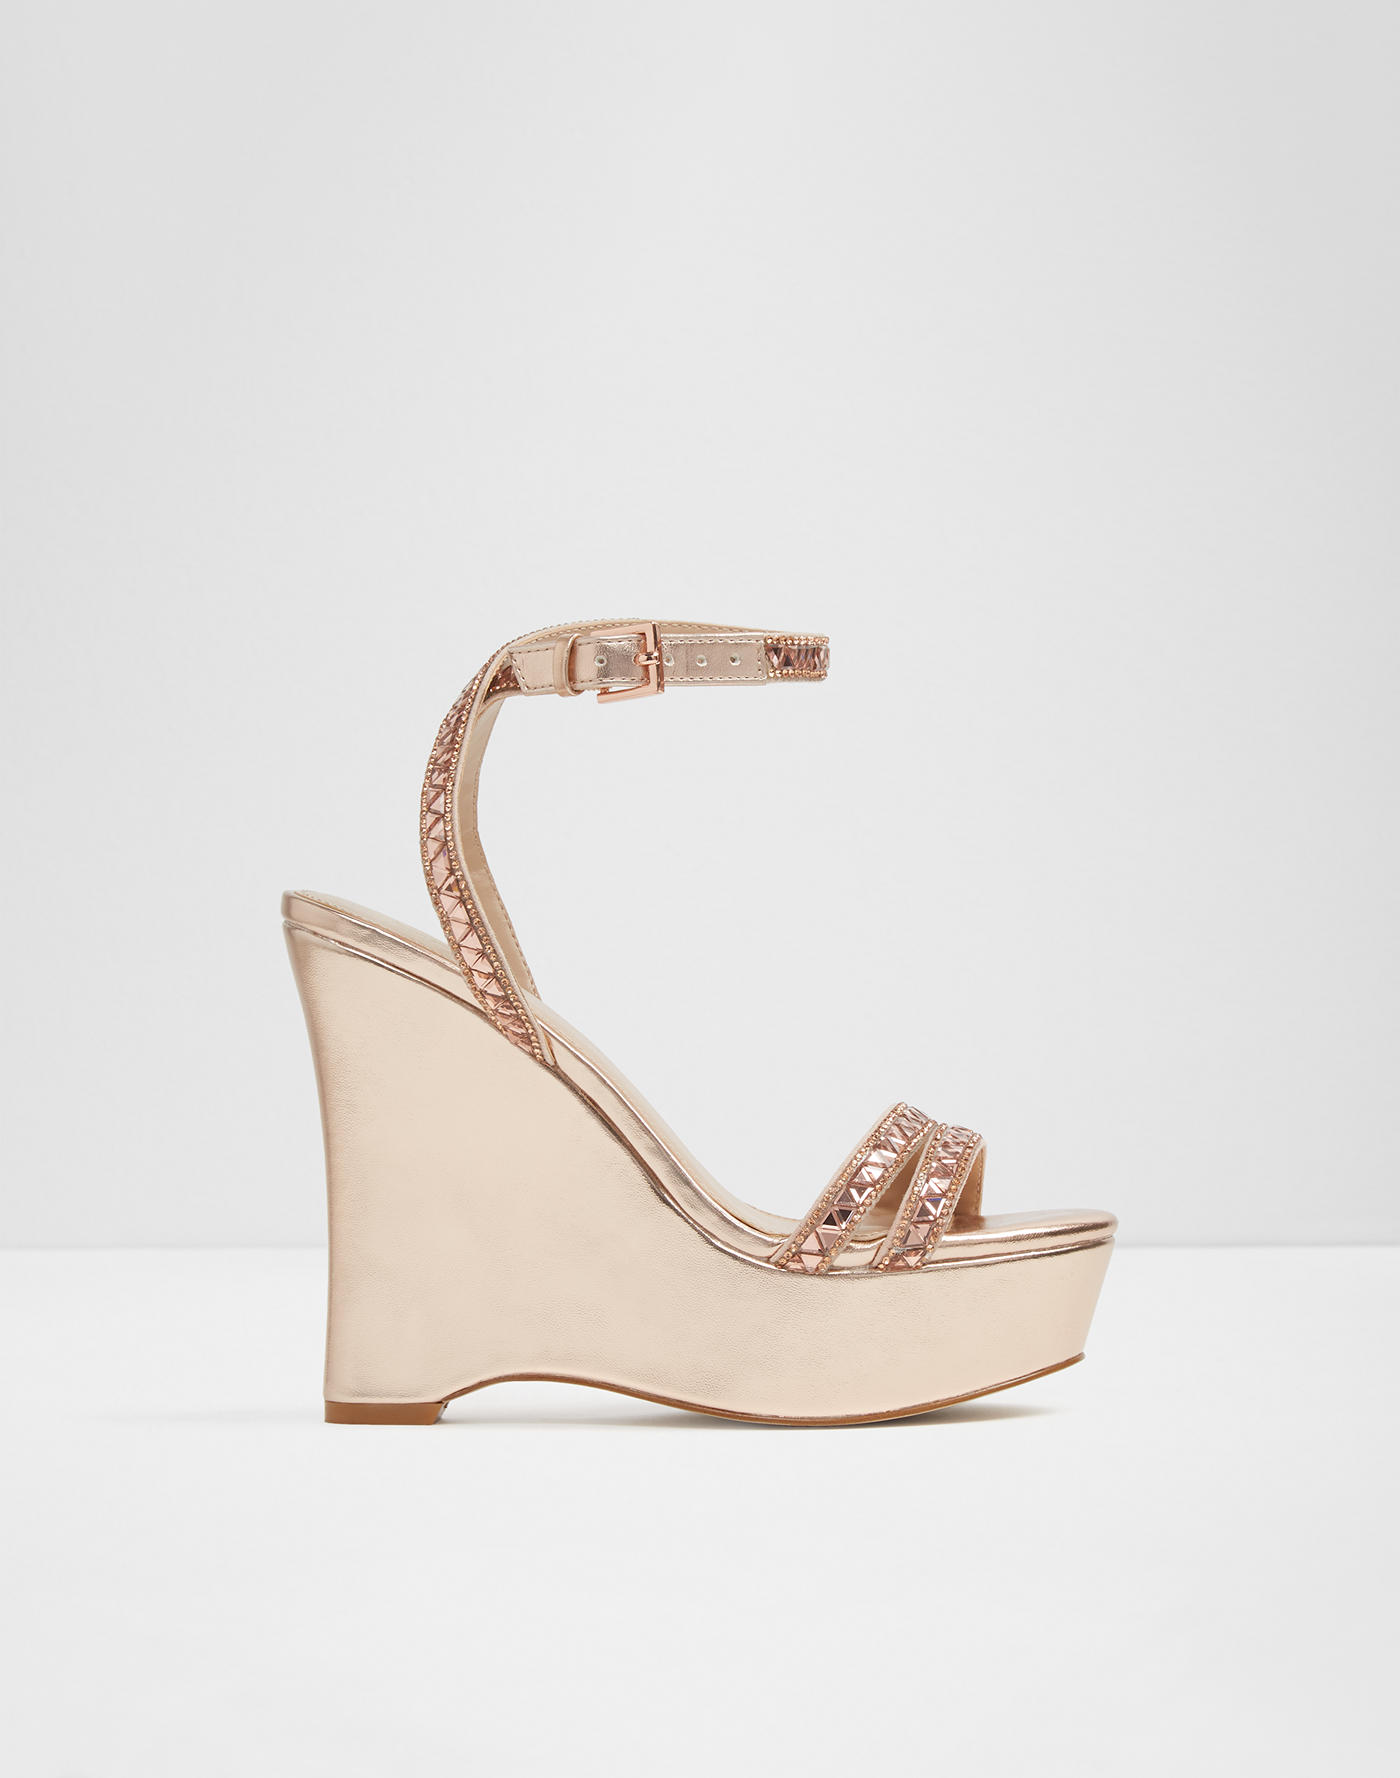 Aldo shoes online ph